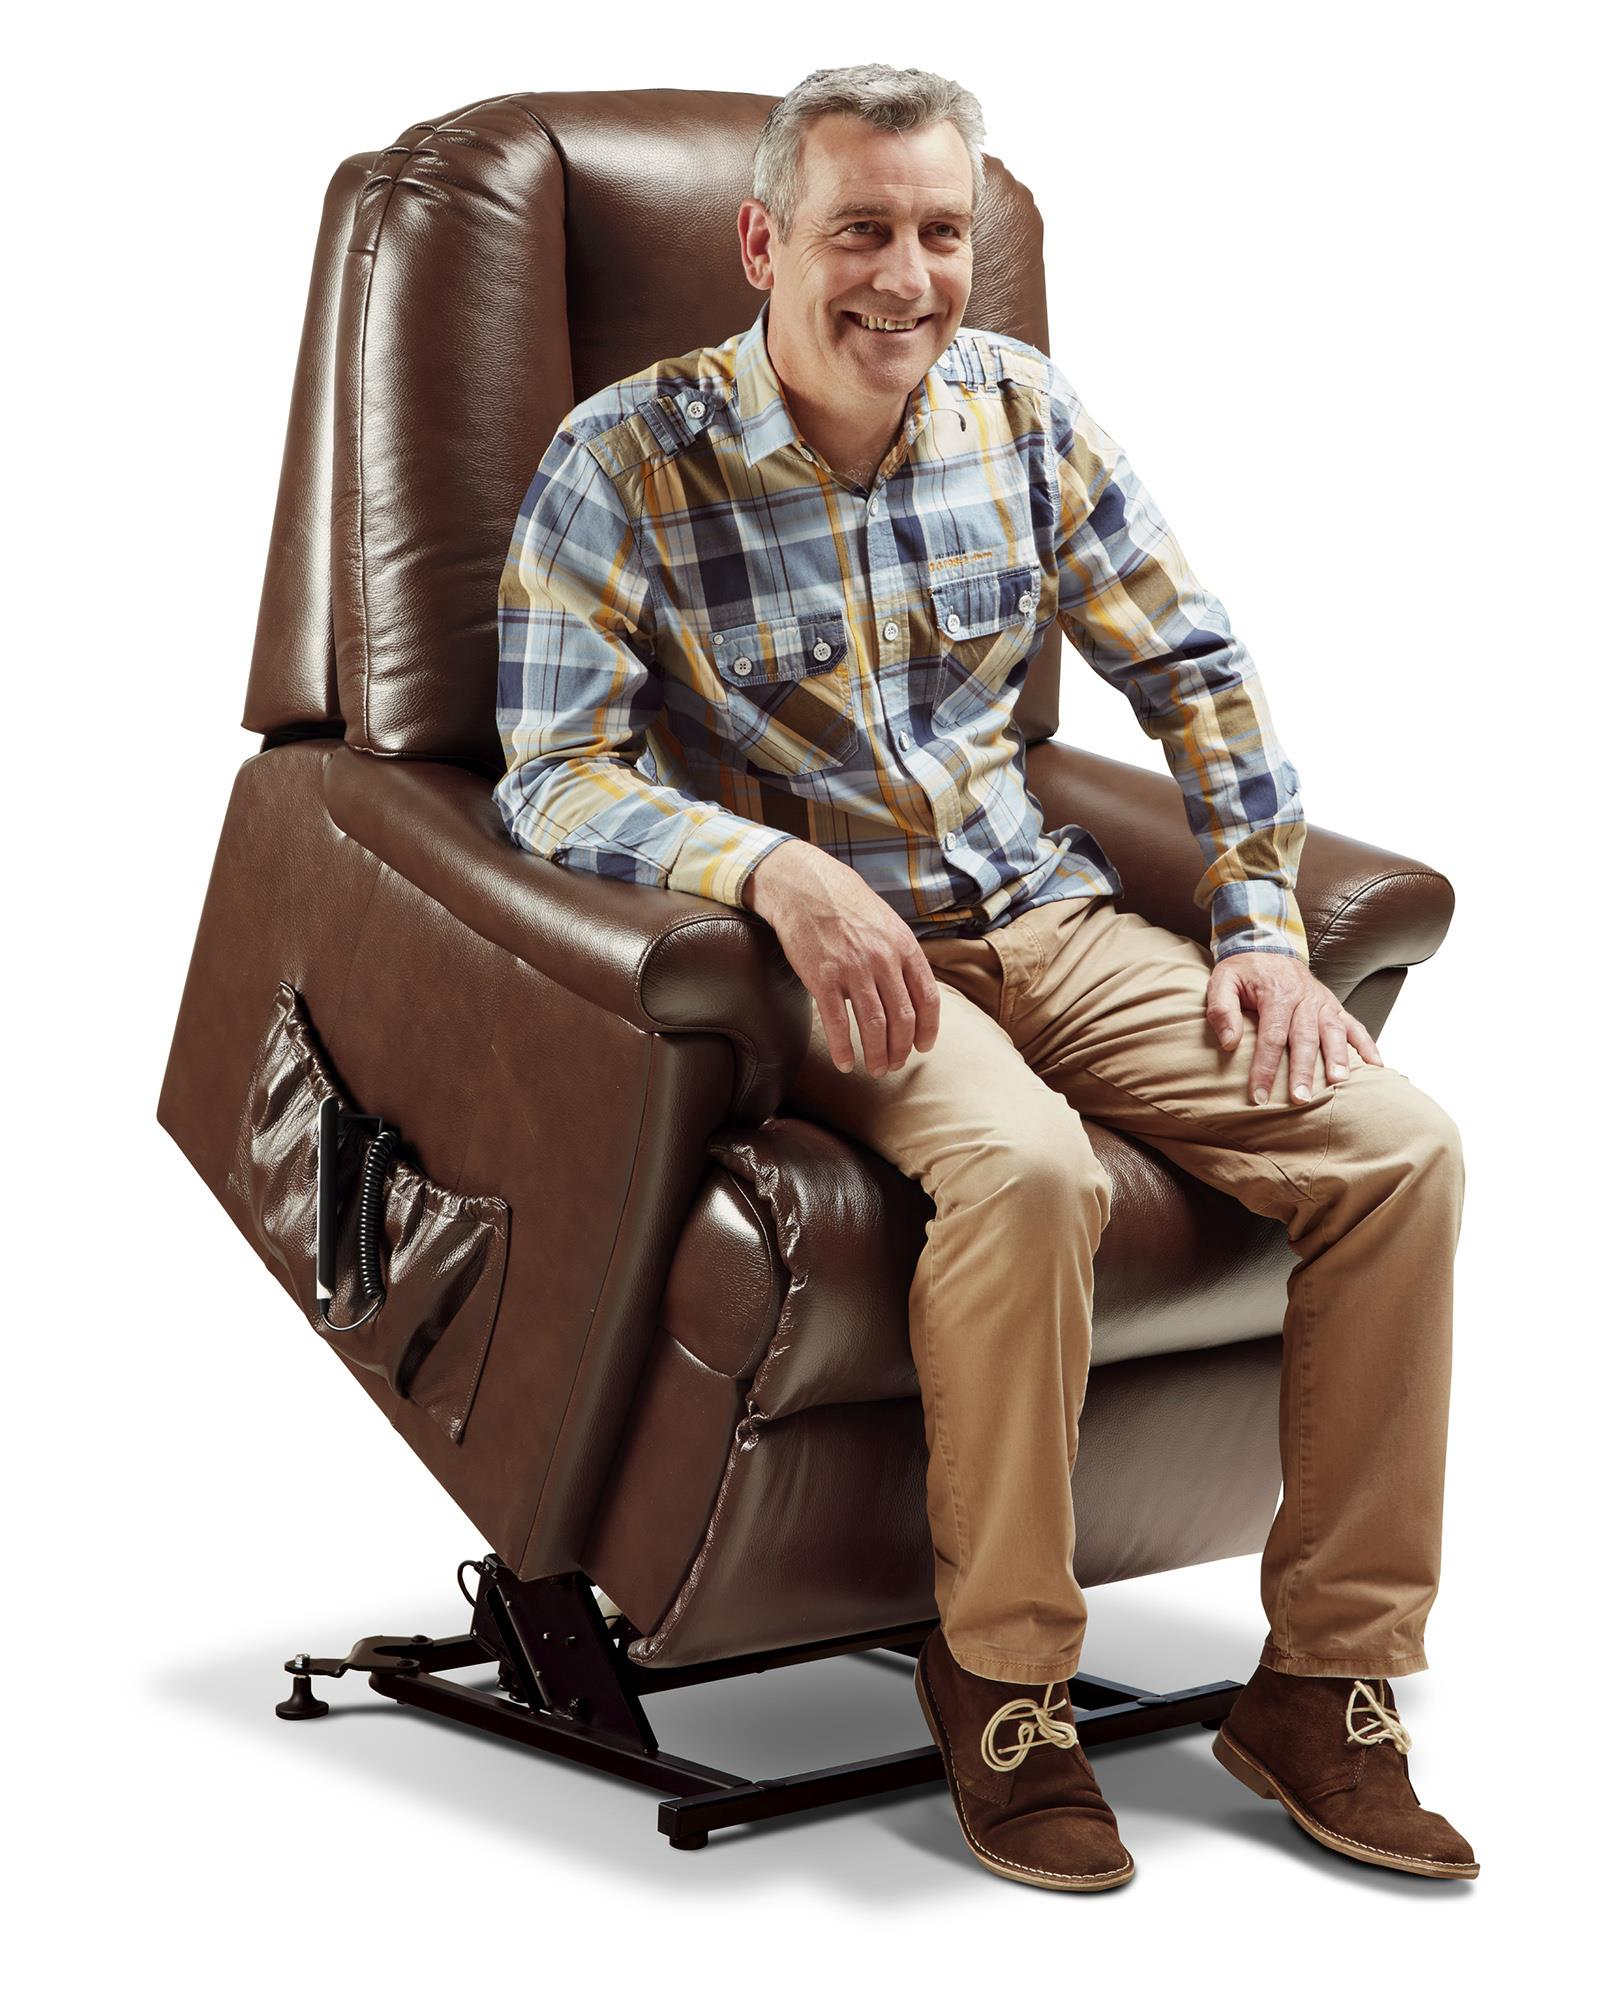 MILBURN - Chair Lift & Rise Recliners